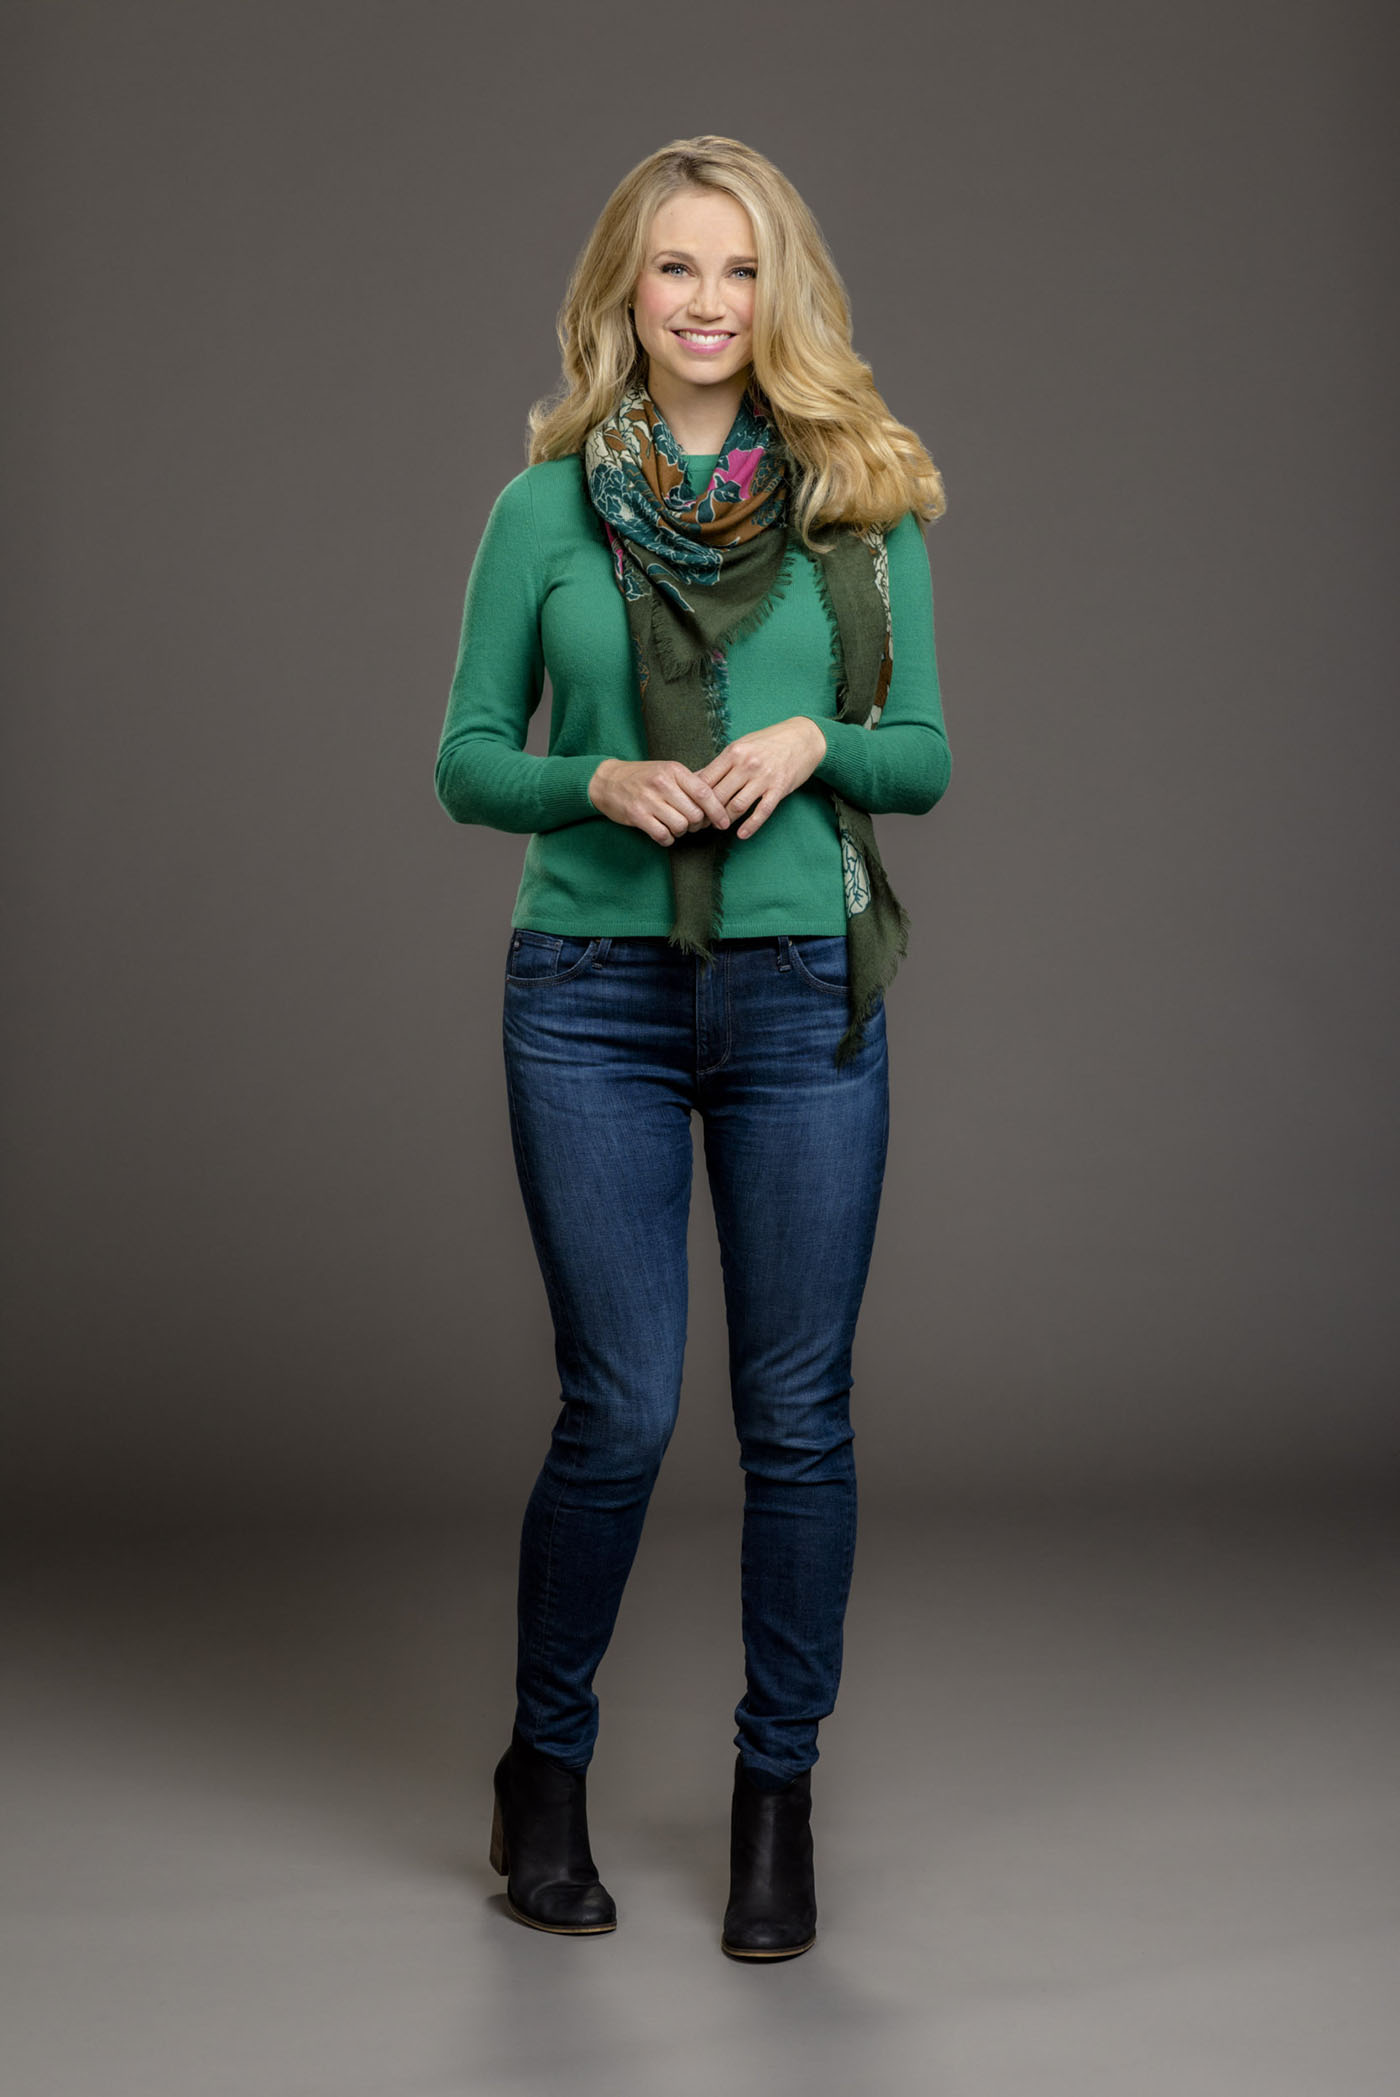 Fiona Gubelmann As April Stewart On Christmas Next Door